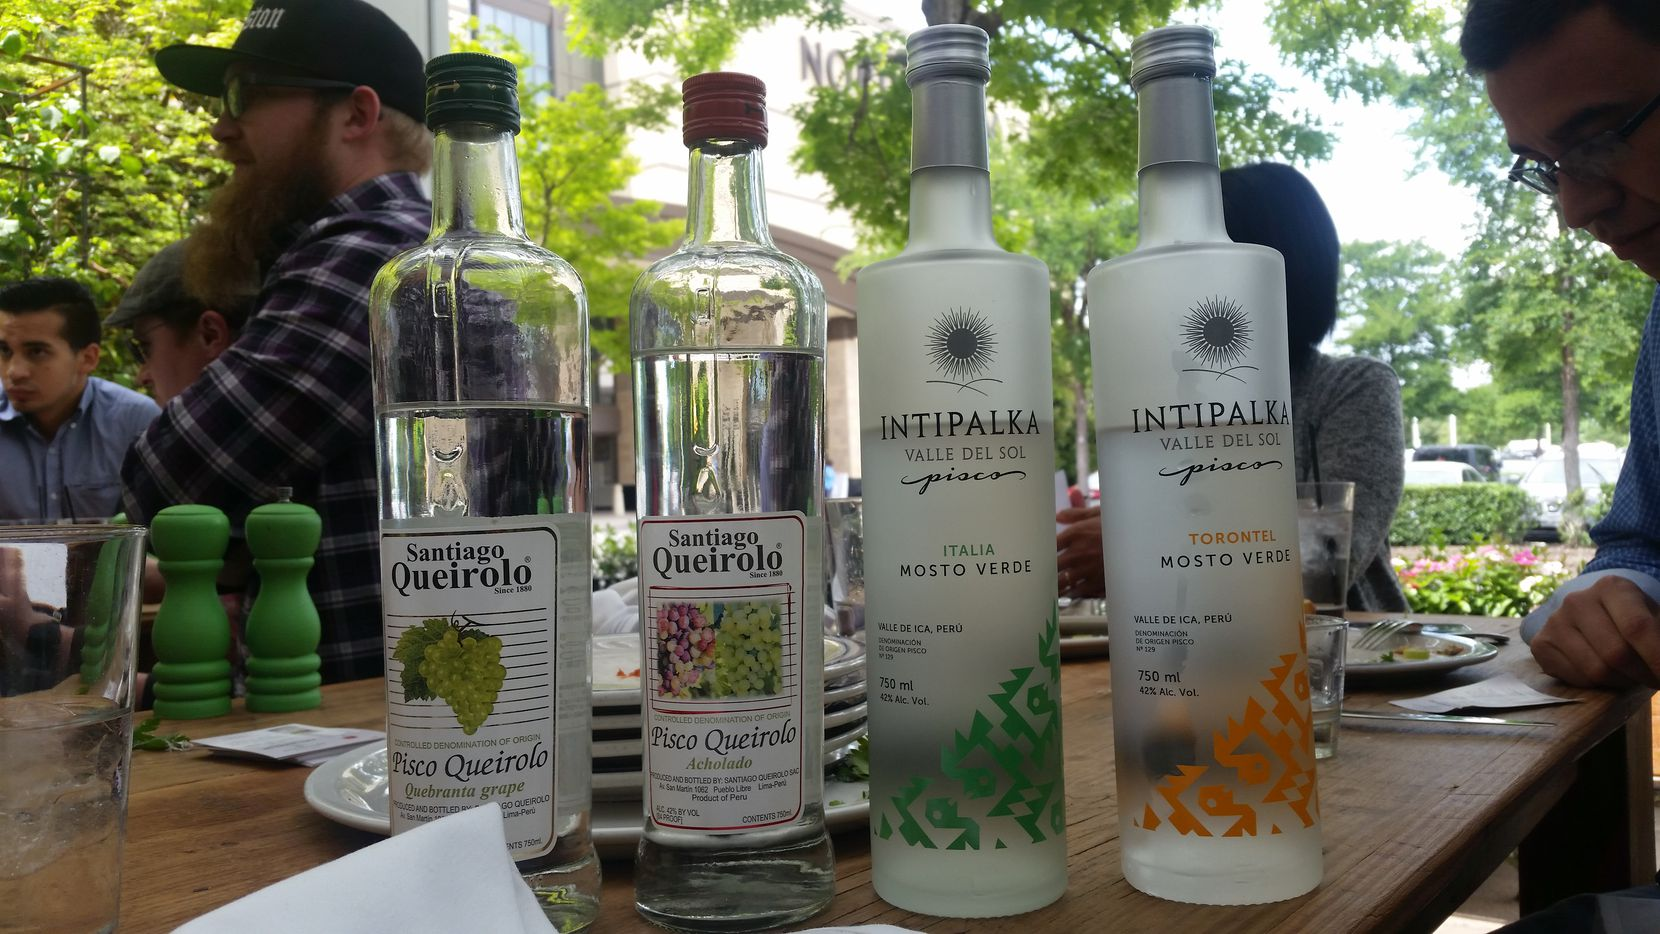 Queirolo and Intipalka will be among the pisco brands represented at Monday's event.